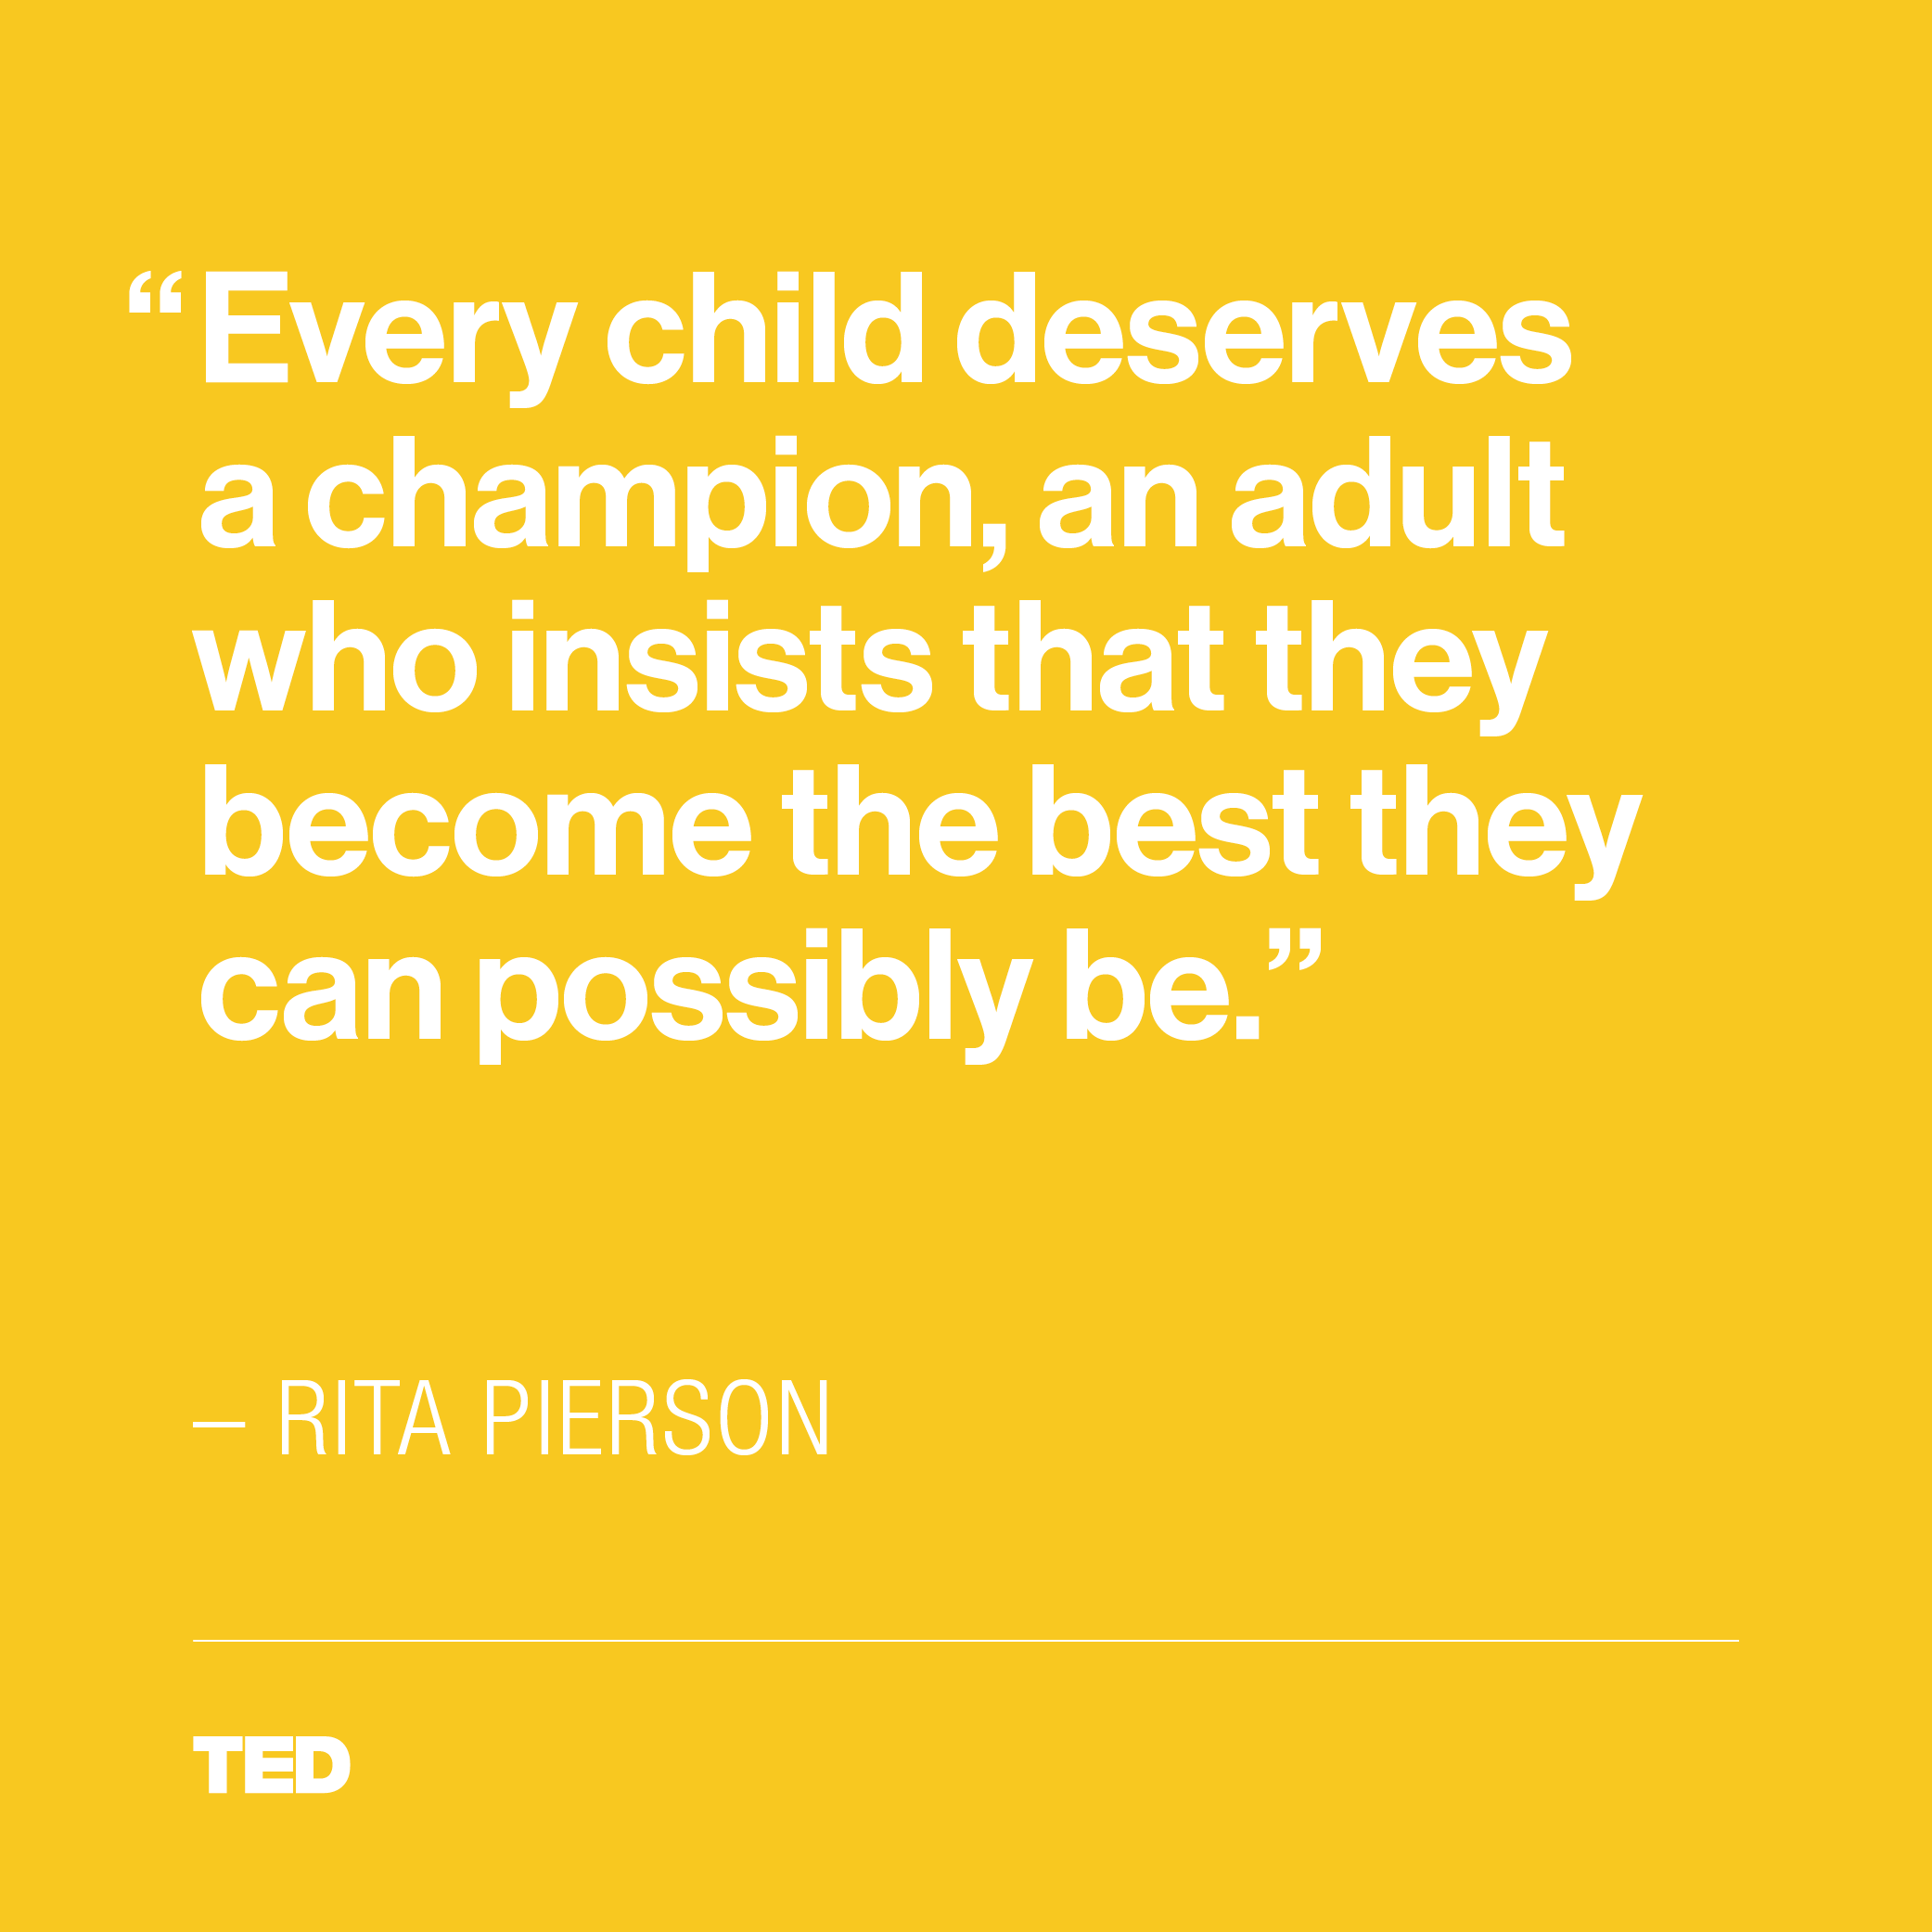 Rita Pierson On The Value Of Inspirational Teachers Rita Pierson Ted Quotes Teacher Inspiration